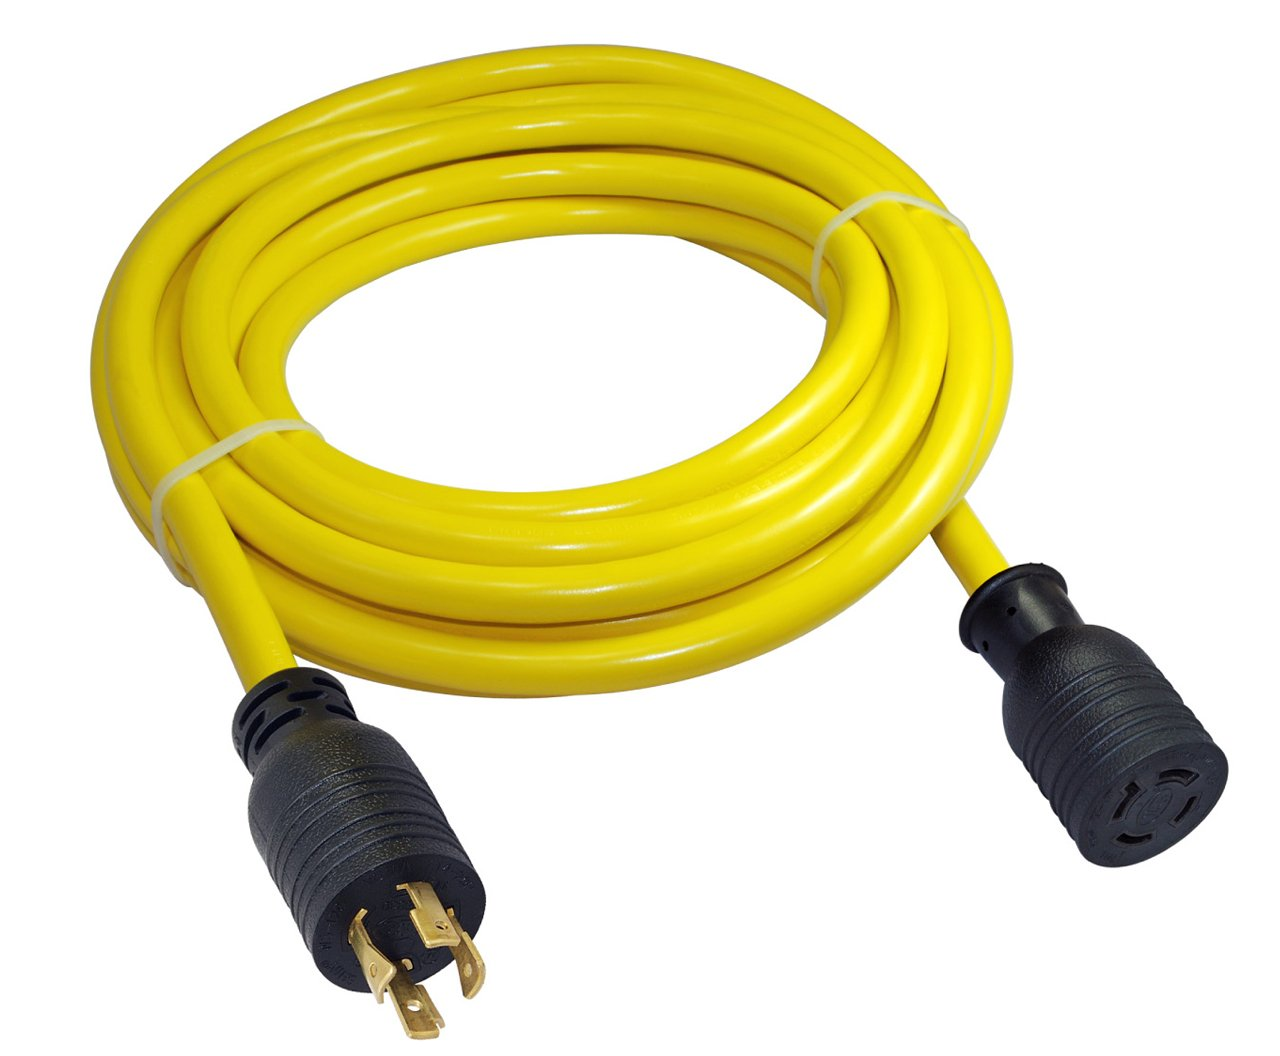 Conntek 20592 Generator Extension Cord 50-Foot 10/4 20 Amp 125/250 Volt 4 Prong Eextension Cord